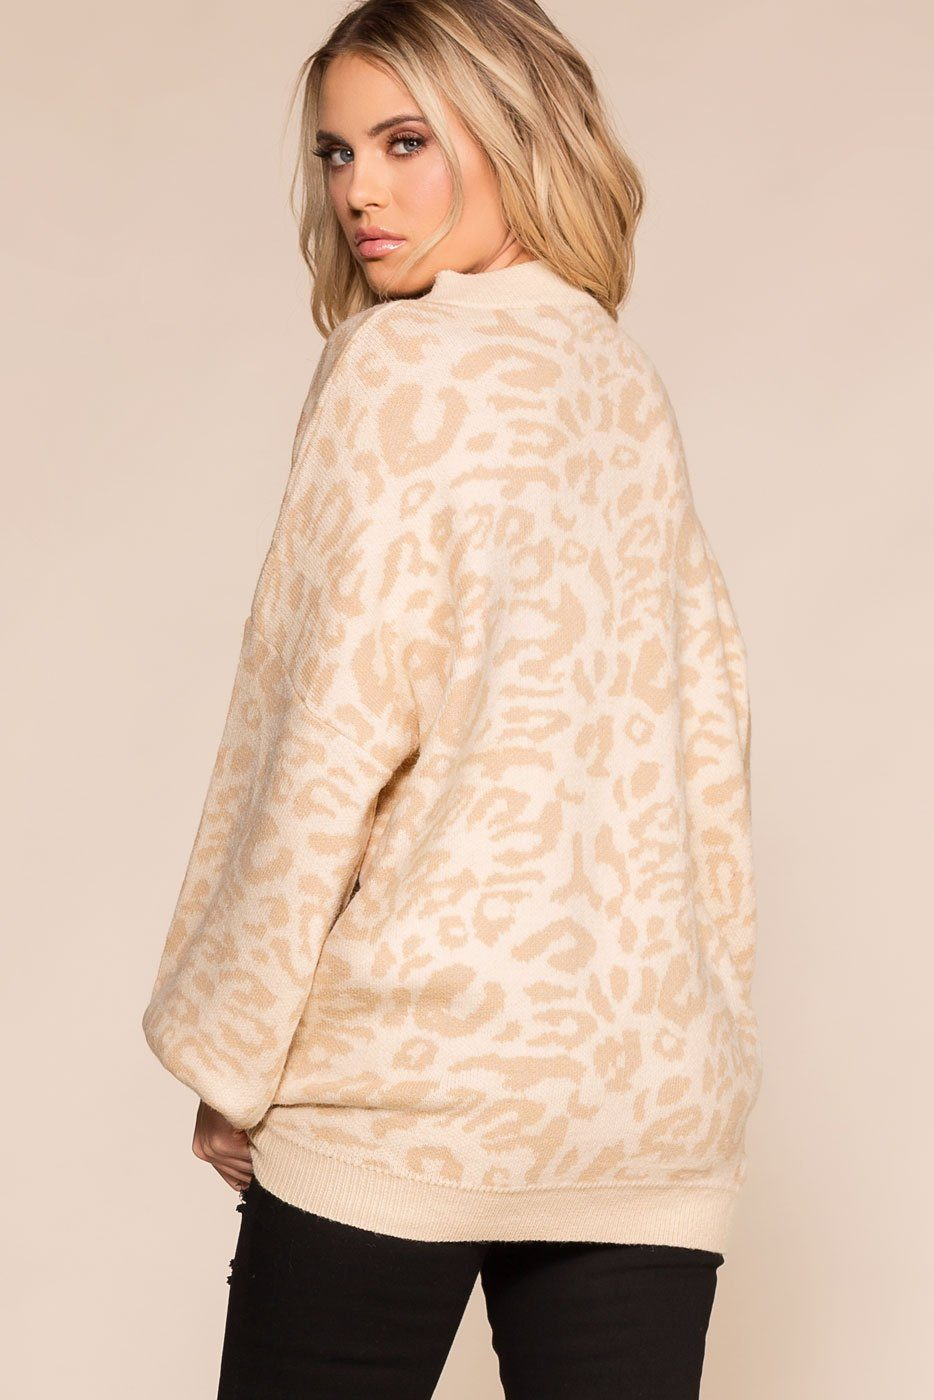 Priceless | Ivory Leopard | Oversized Crew Neck Sweater | Womens